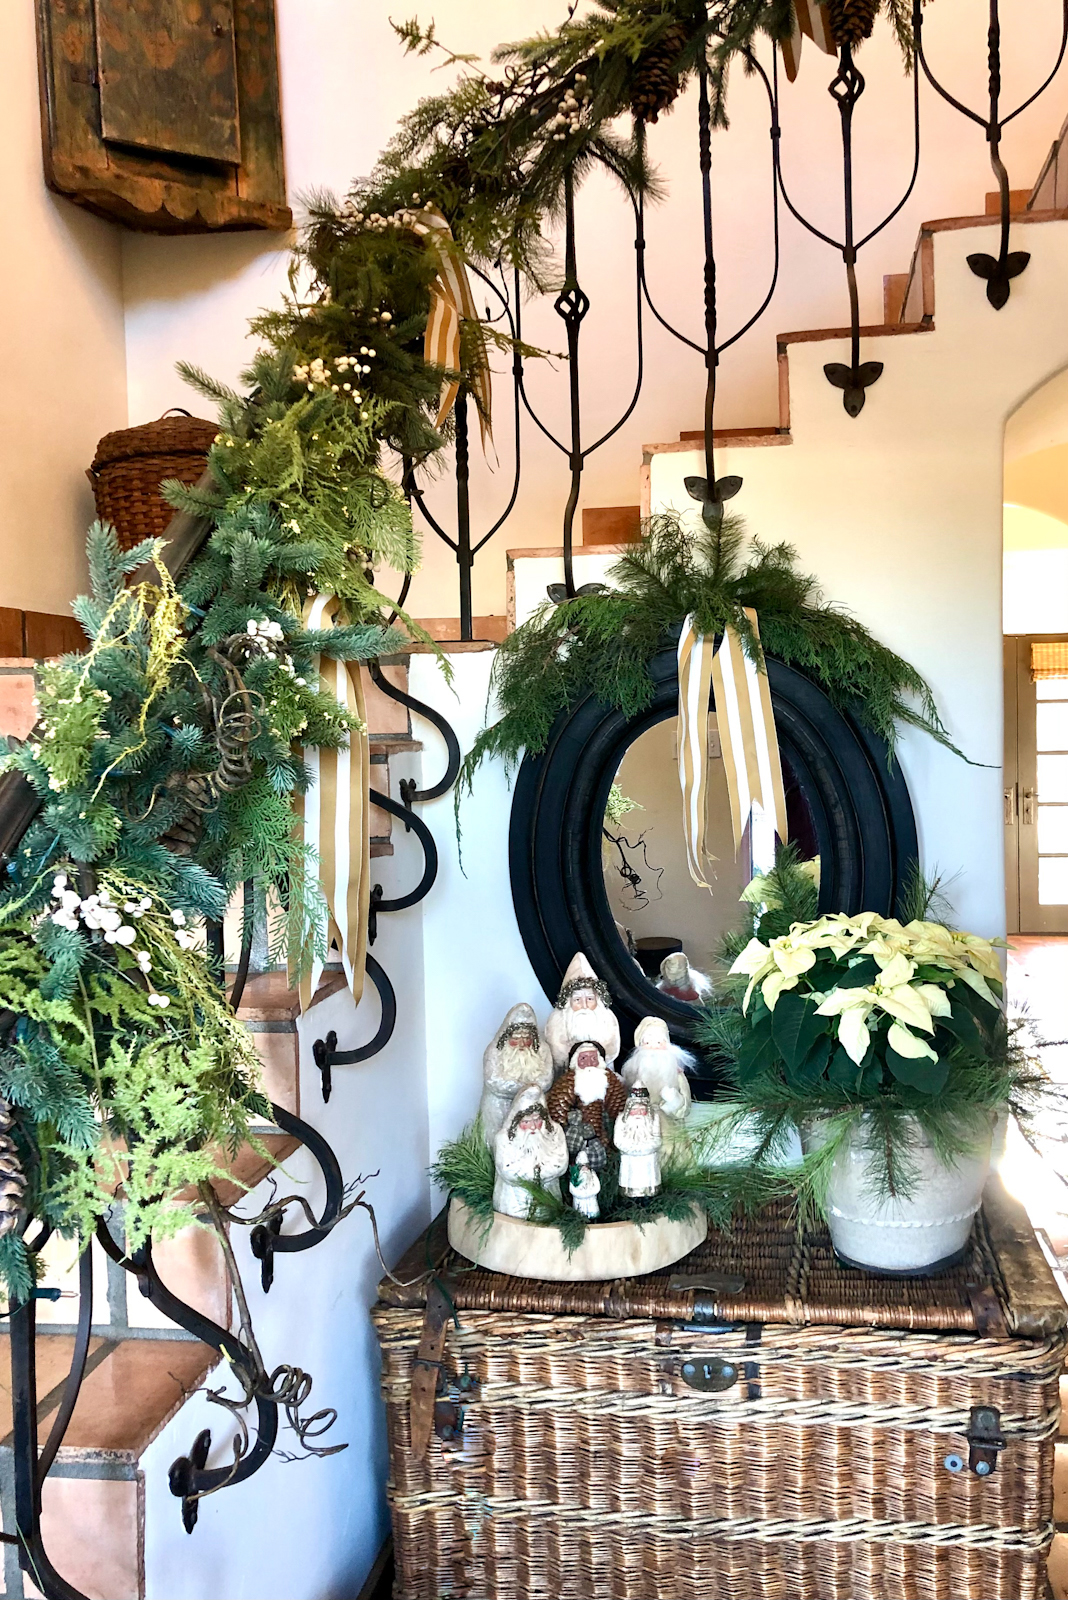 cindy hattersley's christmas entry with wicker traveling trunk